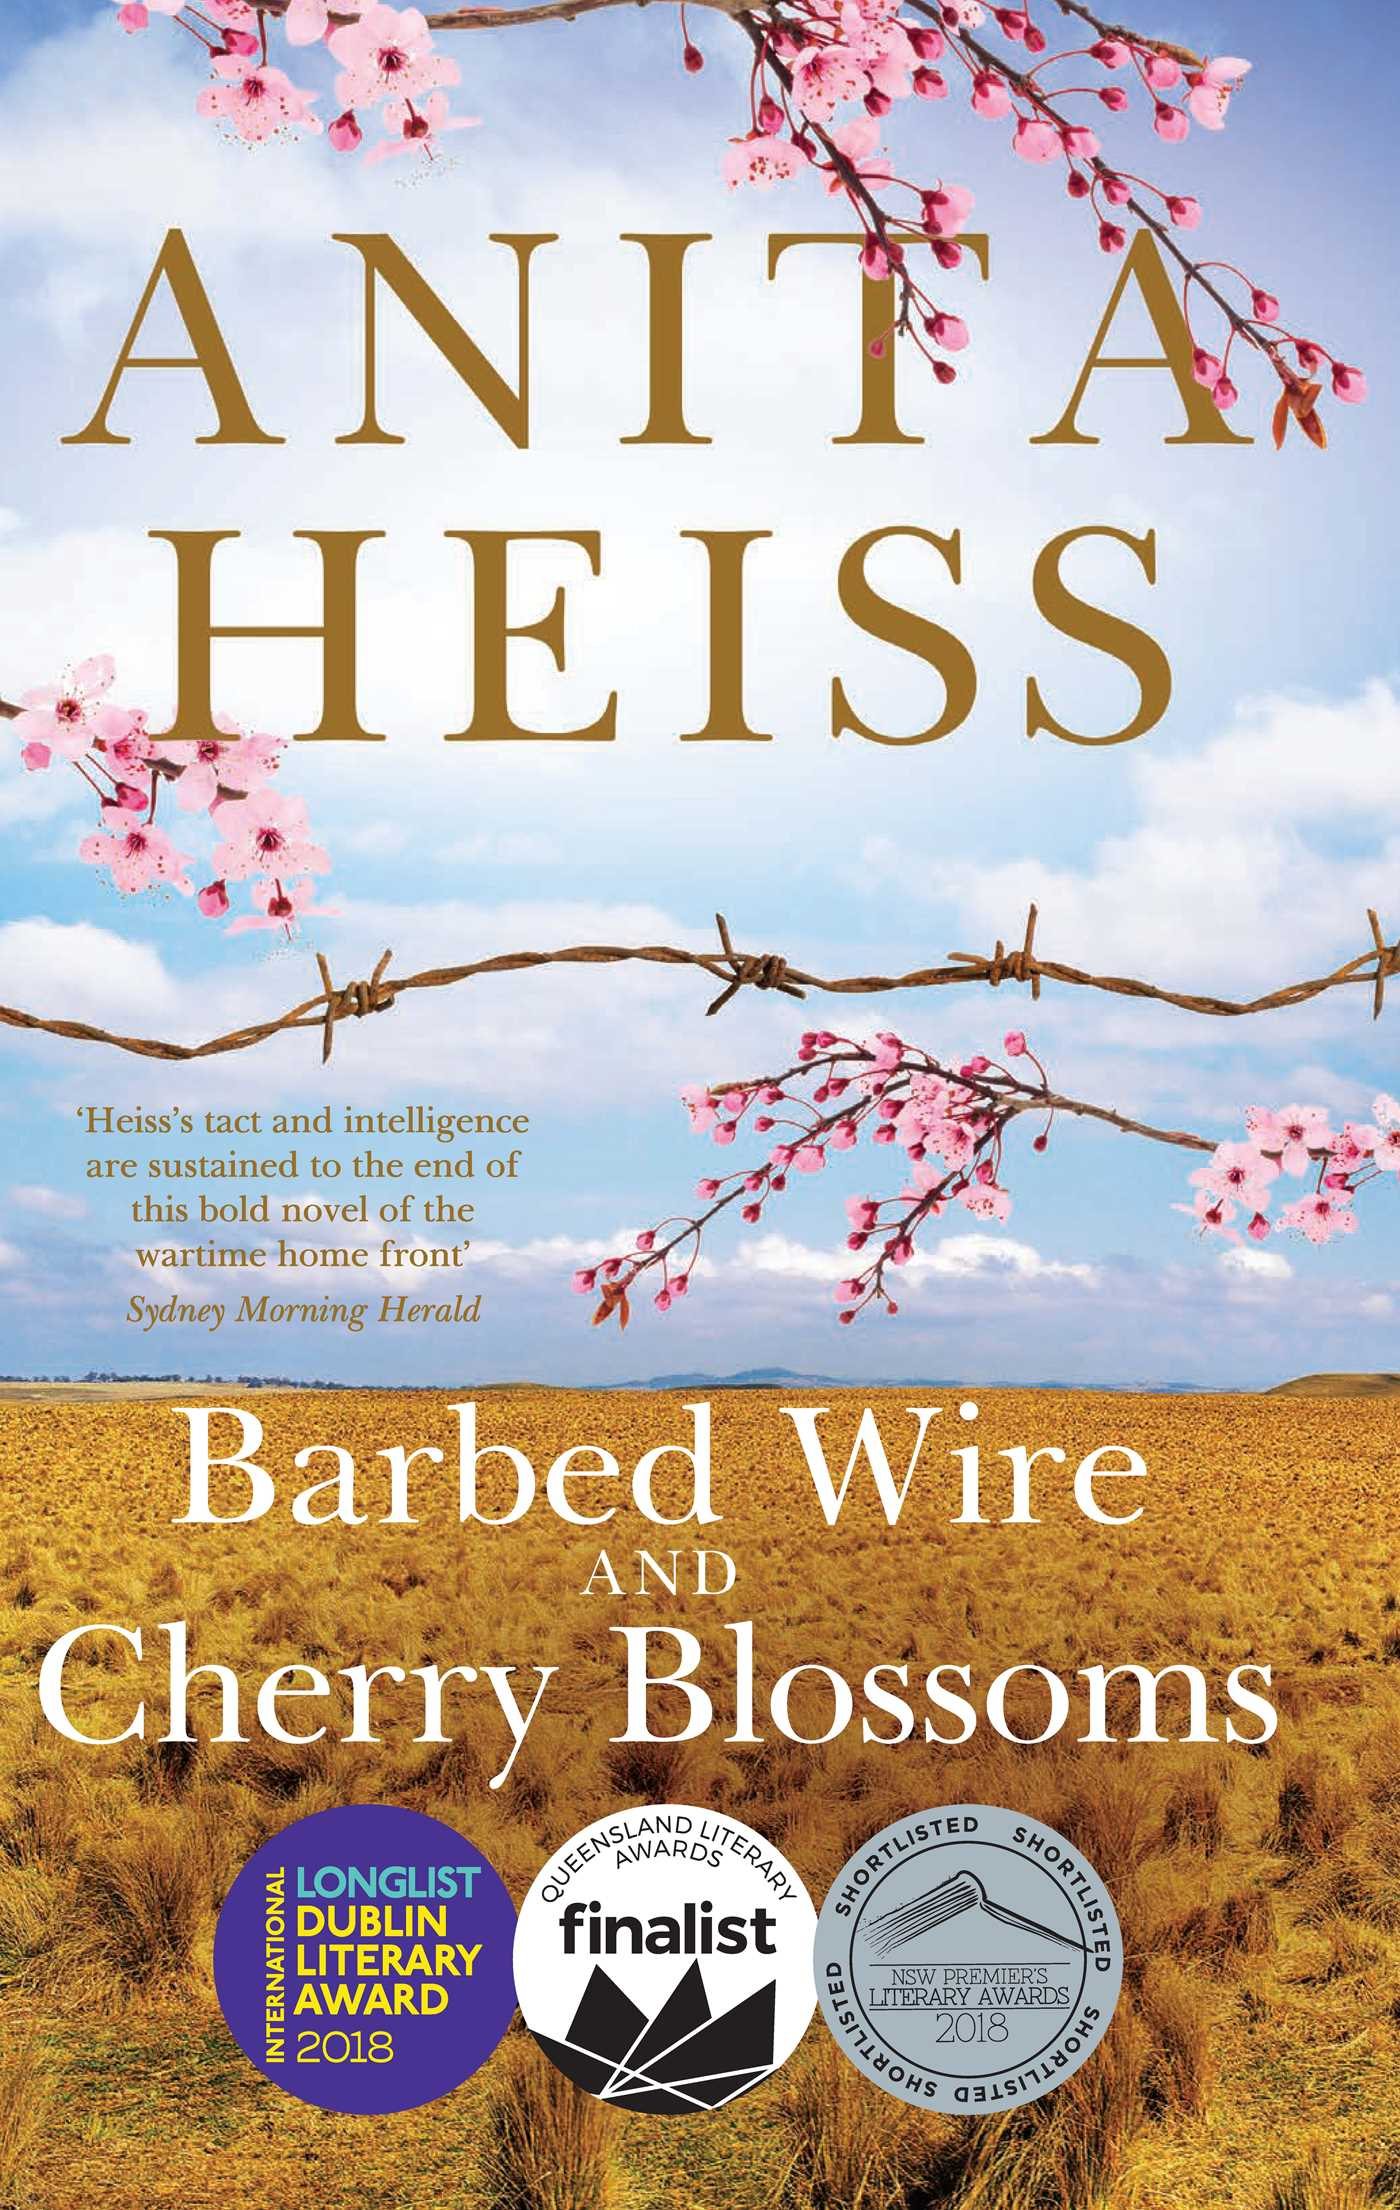 Barbed wire and cherry blossoms 9781925184860 hr